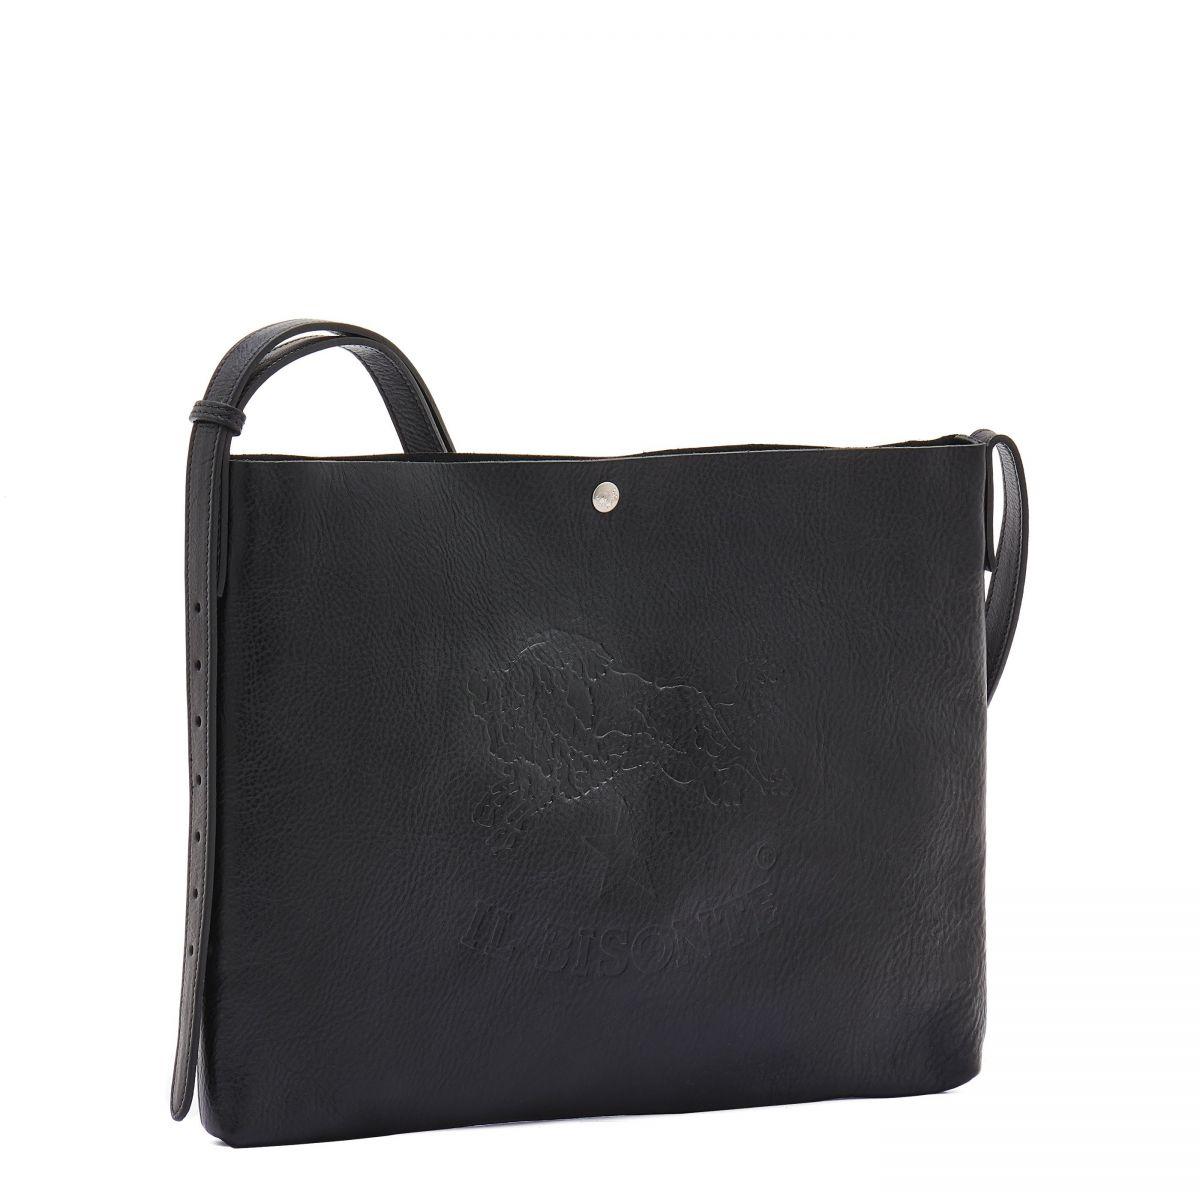 Men's Shoulder Bag in Cowhide Double Leather BSH042 color Black | Details